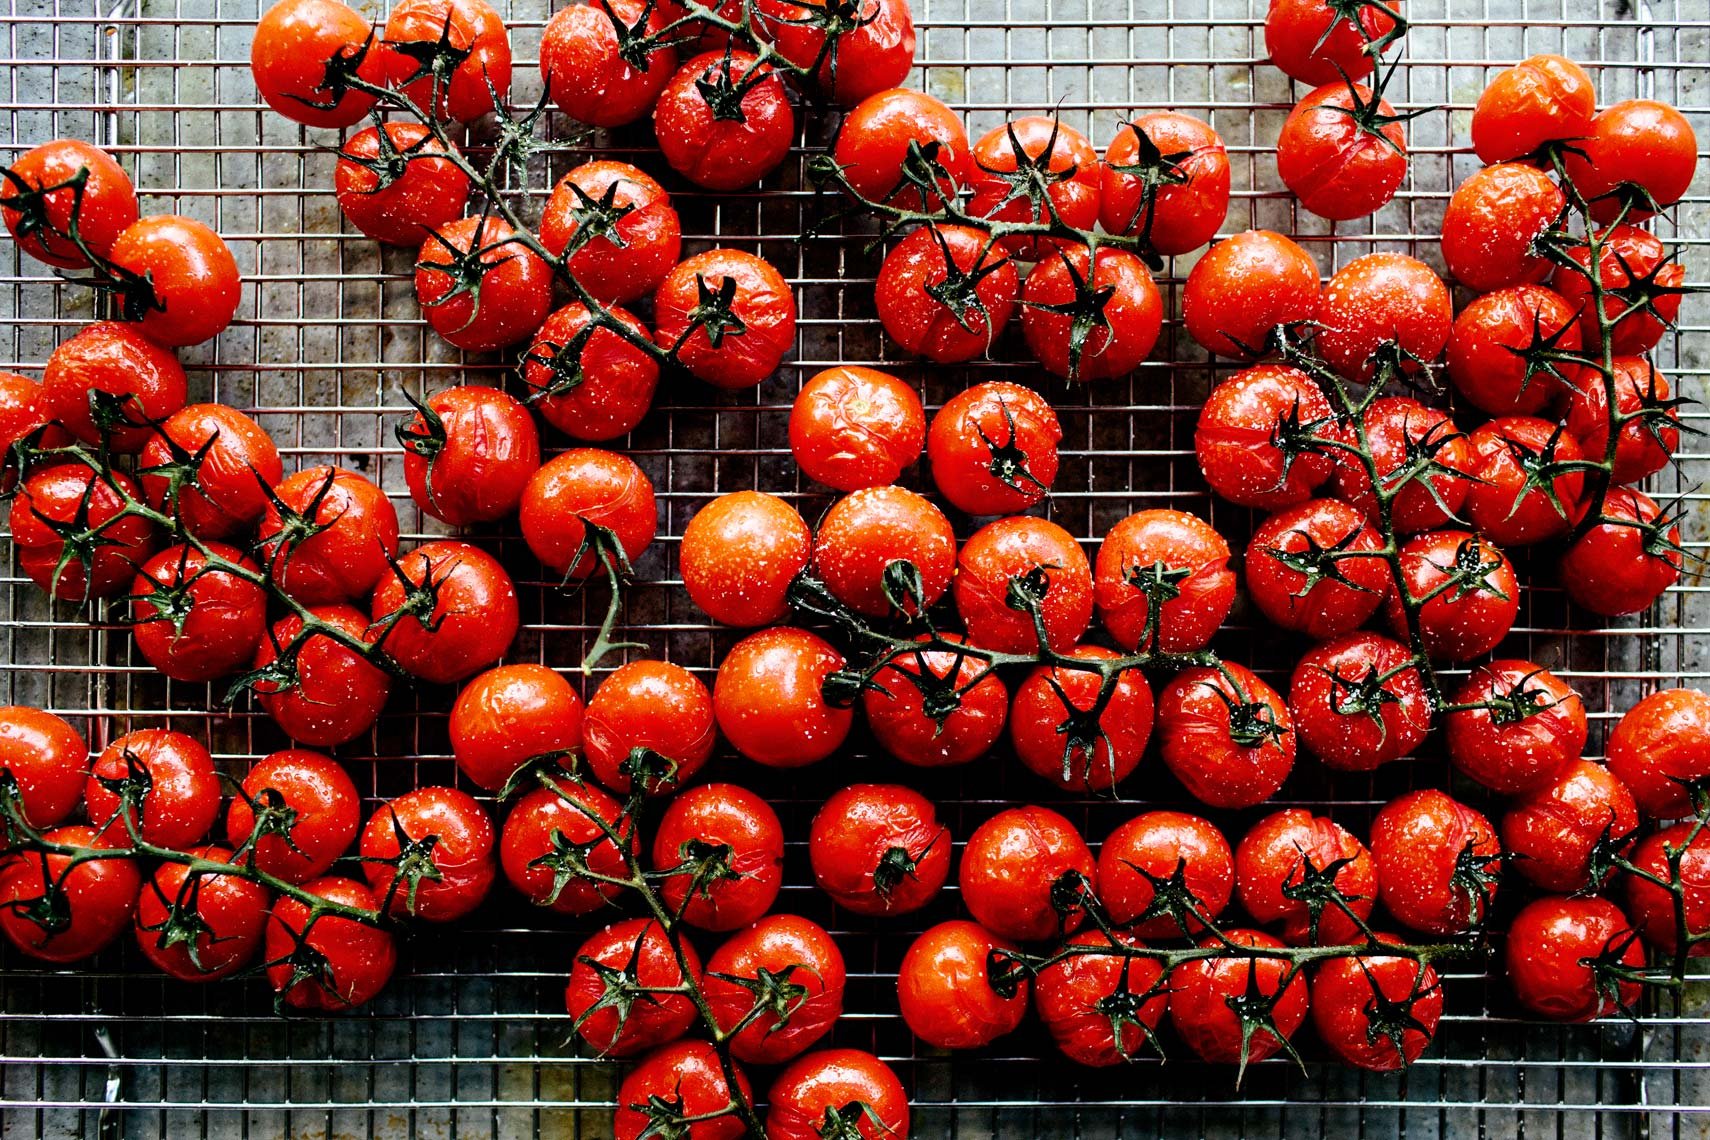 Roasted Tomatoes from Sorellina